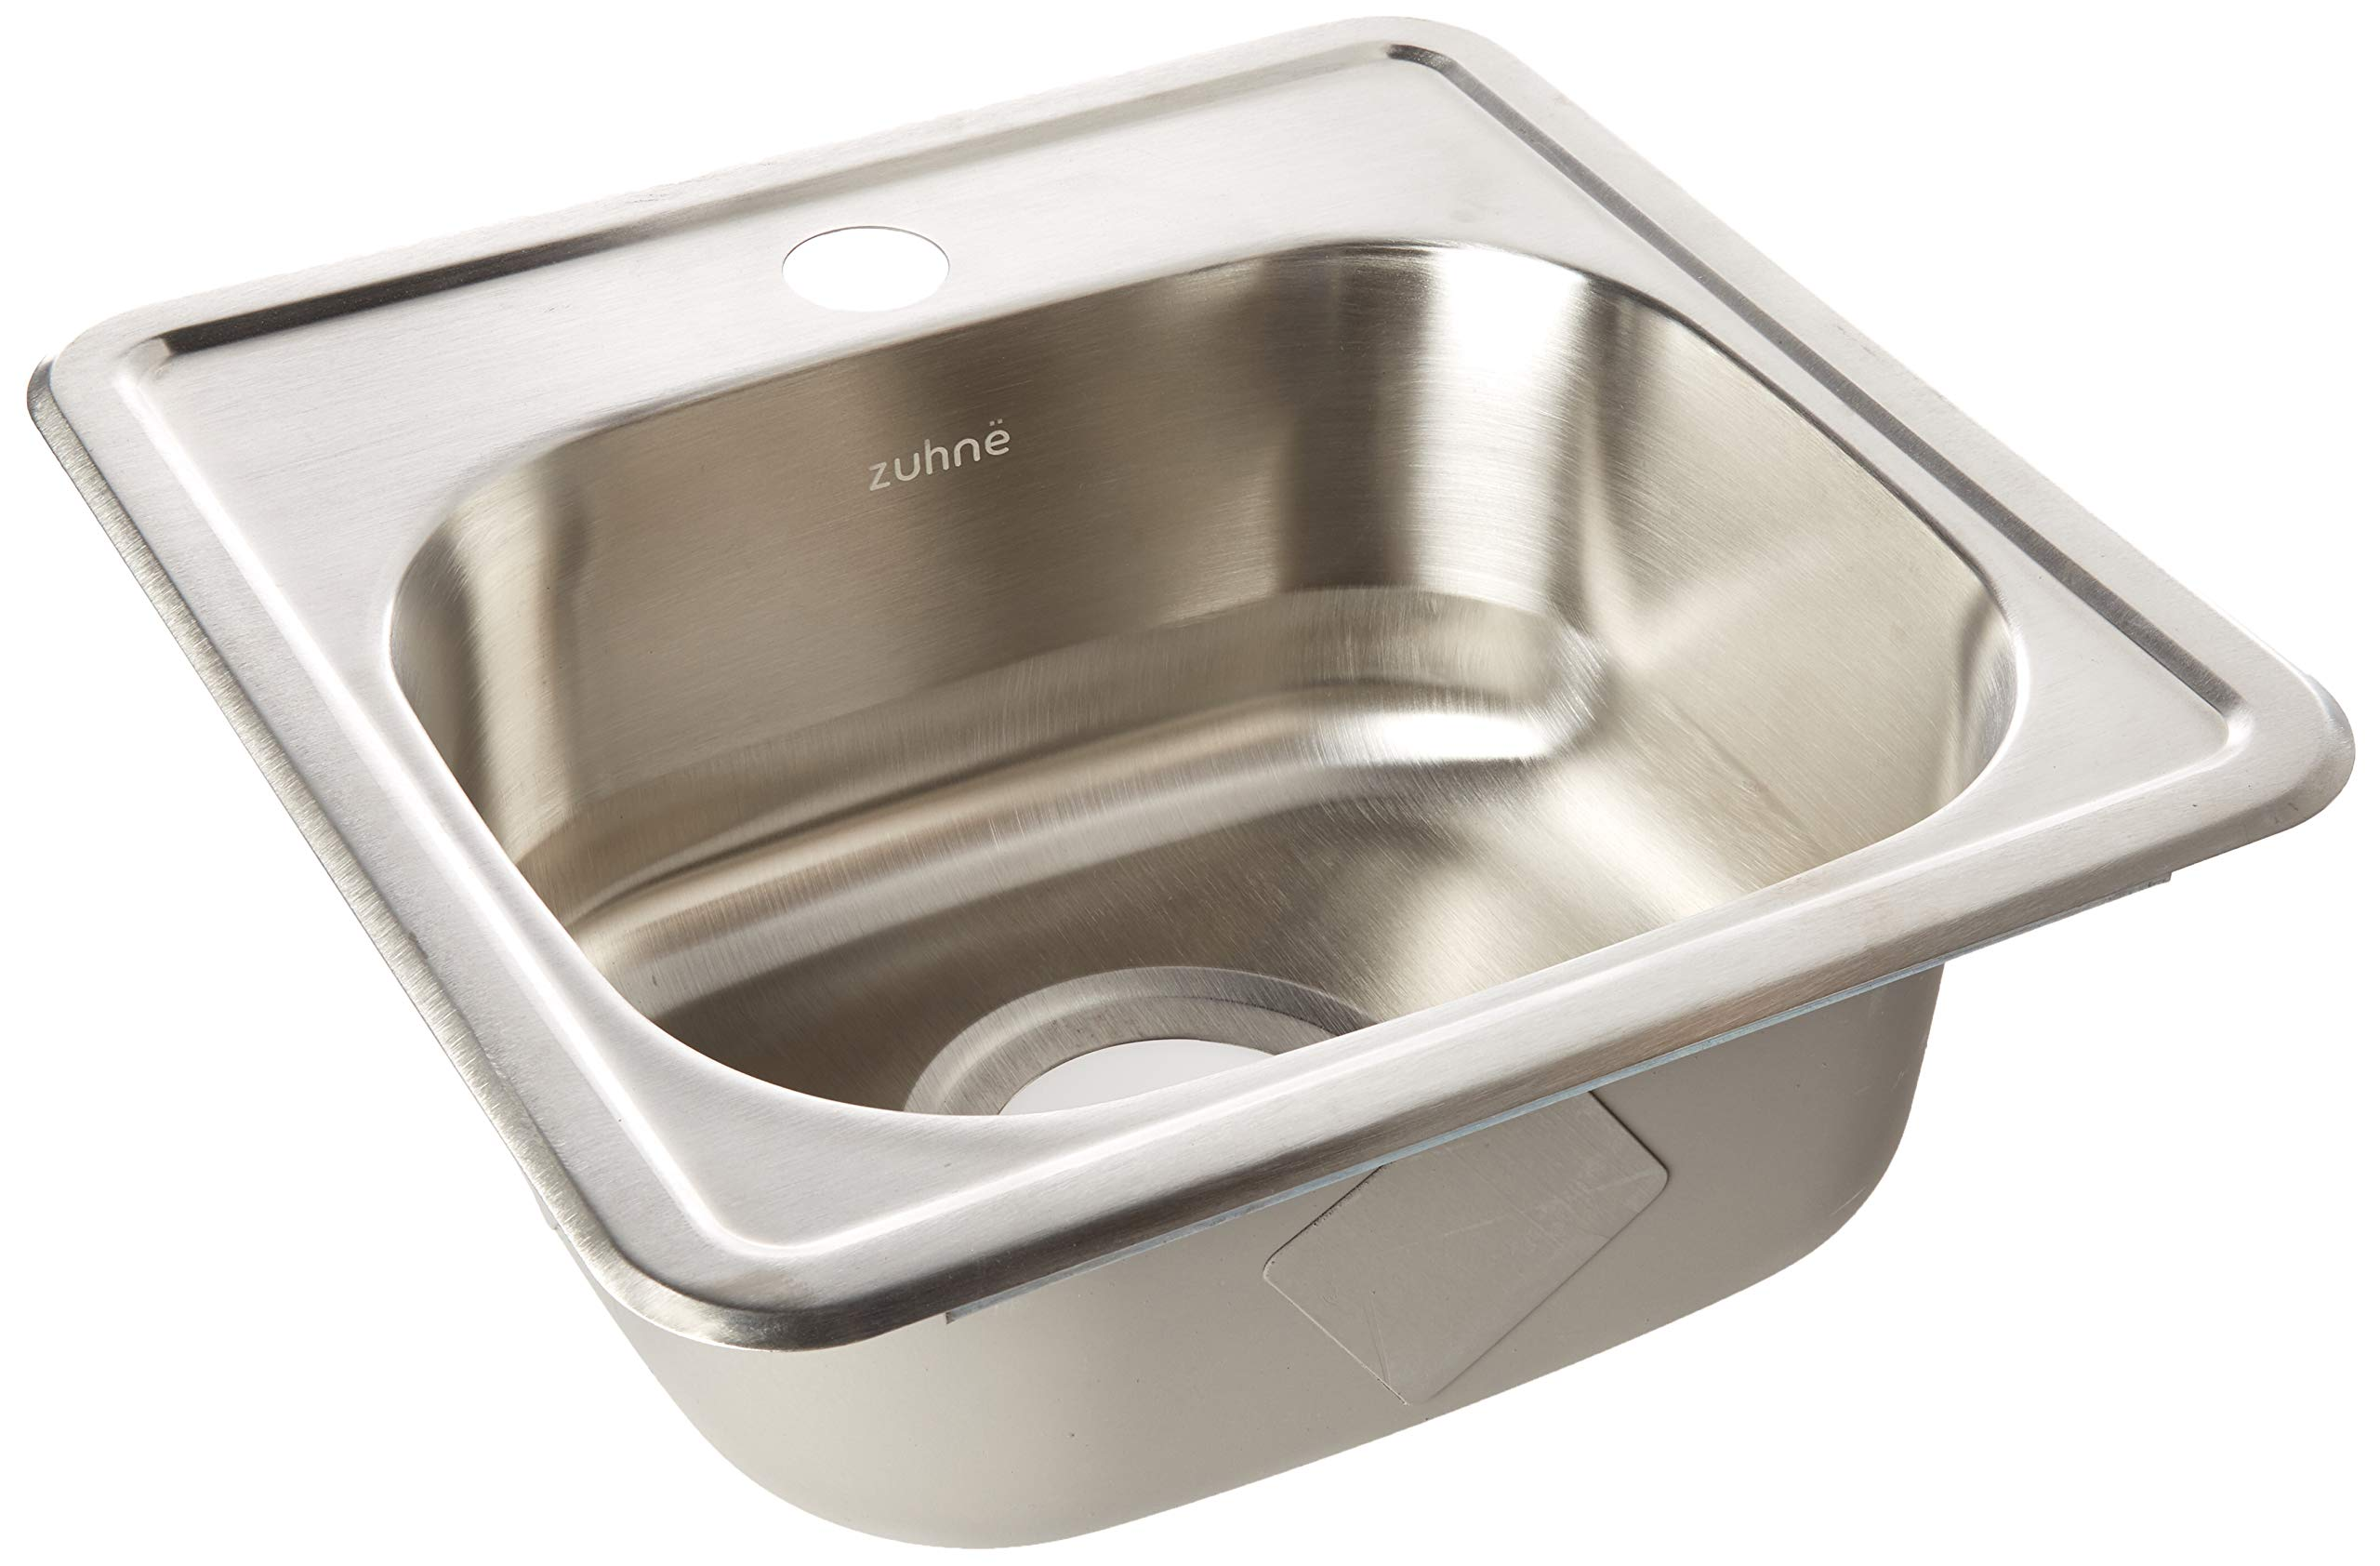 ZUHNE Drop-In Top Mount or Over Mount One Deck Hole Single and Double Bowl Stainless Steel Kitchen Sink (15x15 Single) by Zuhne (Image #1)